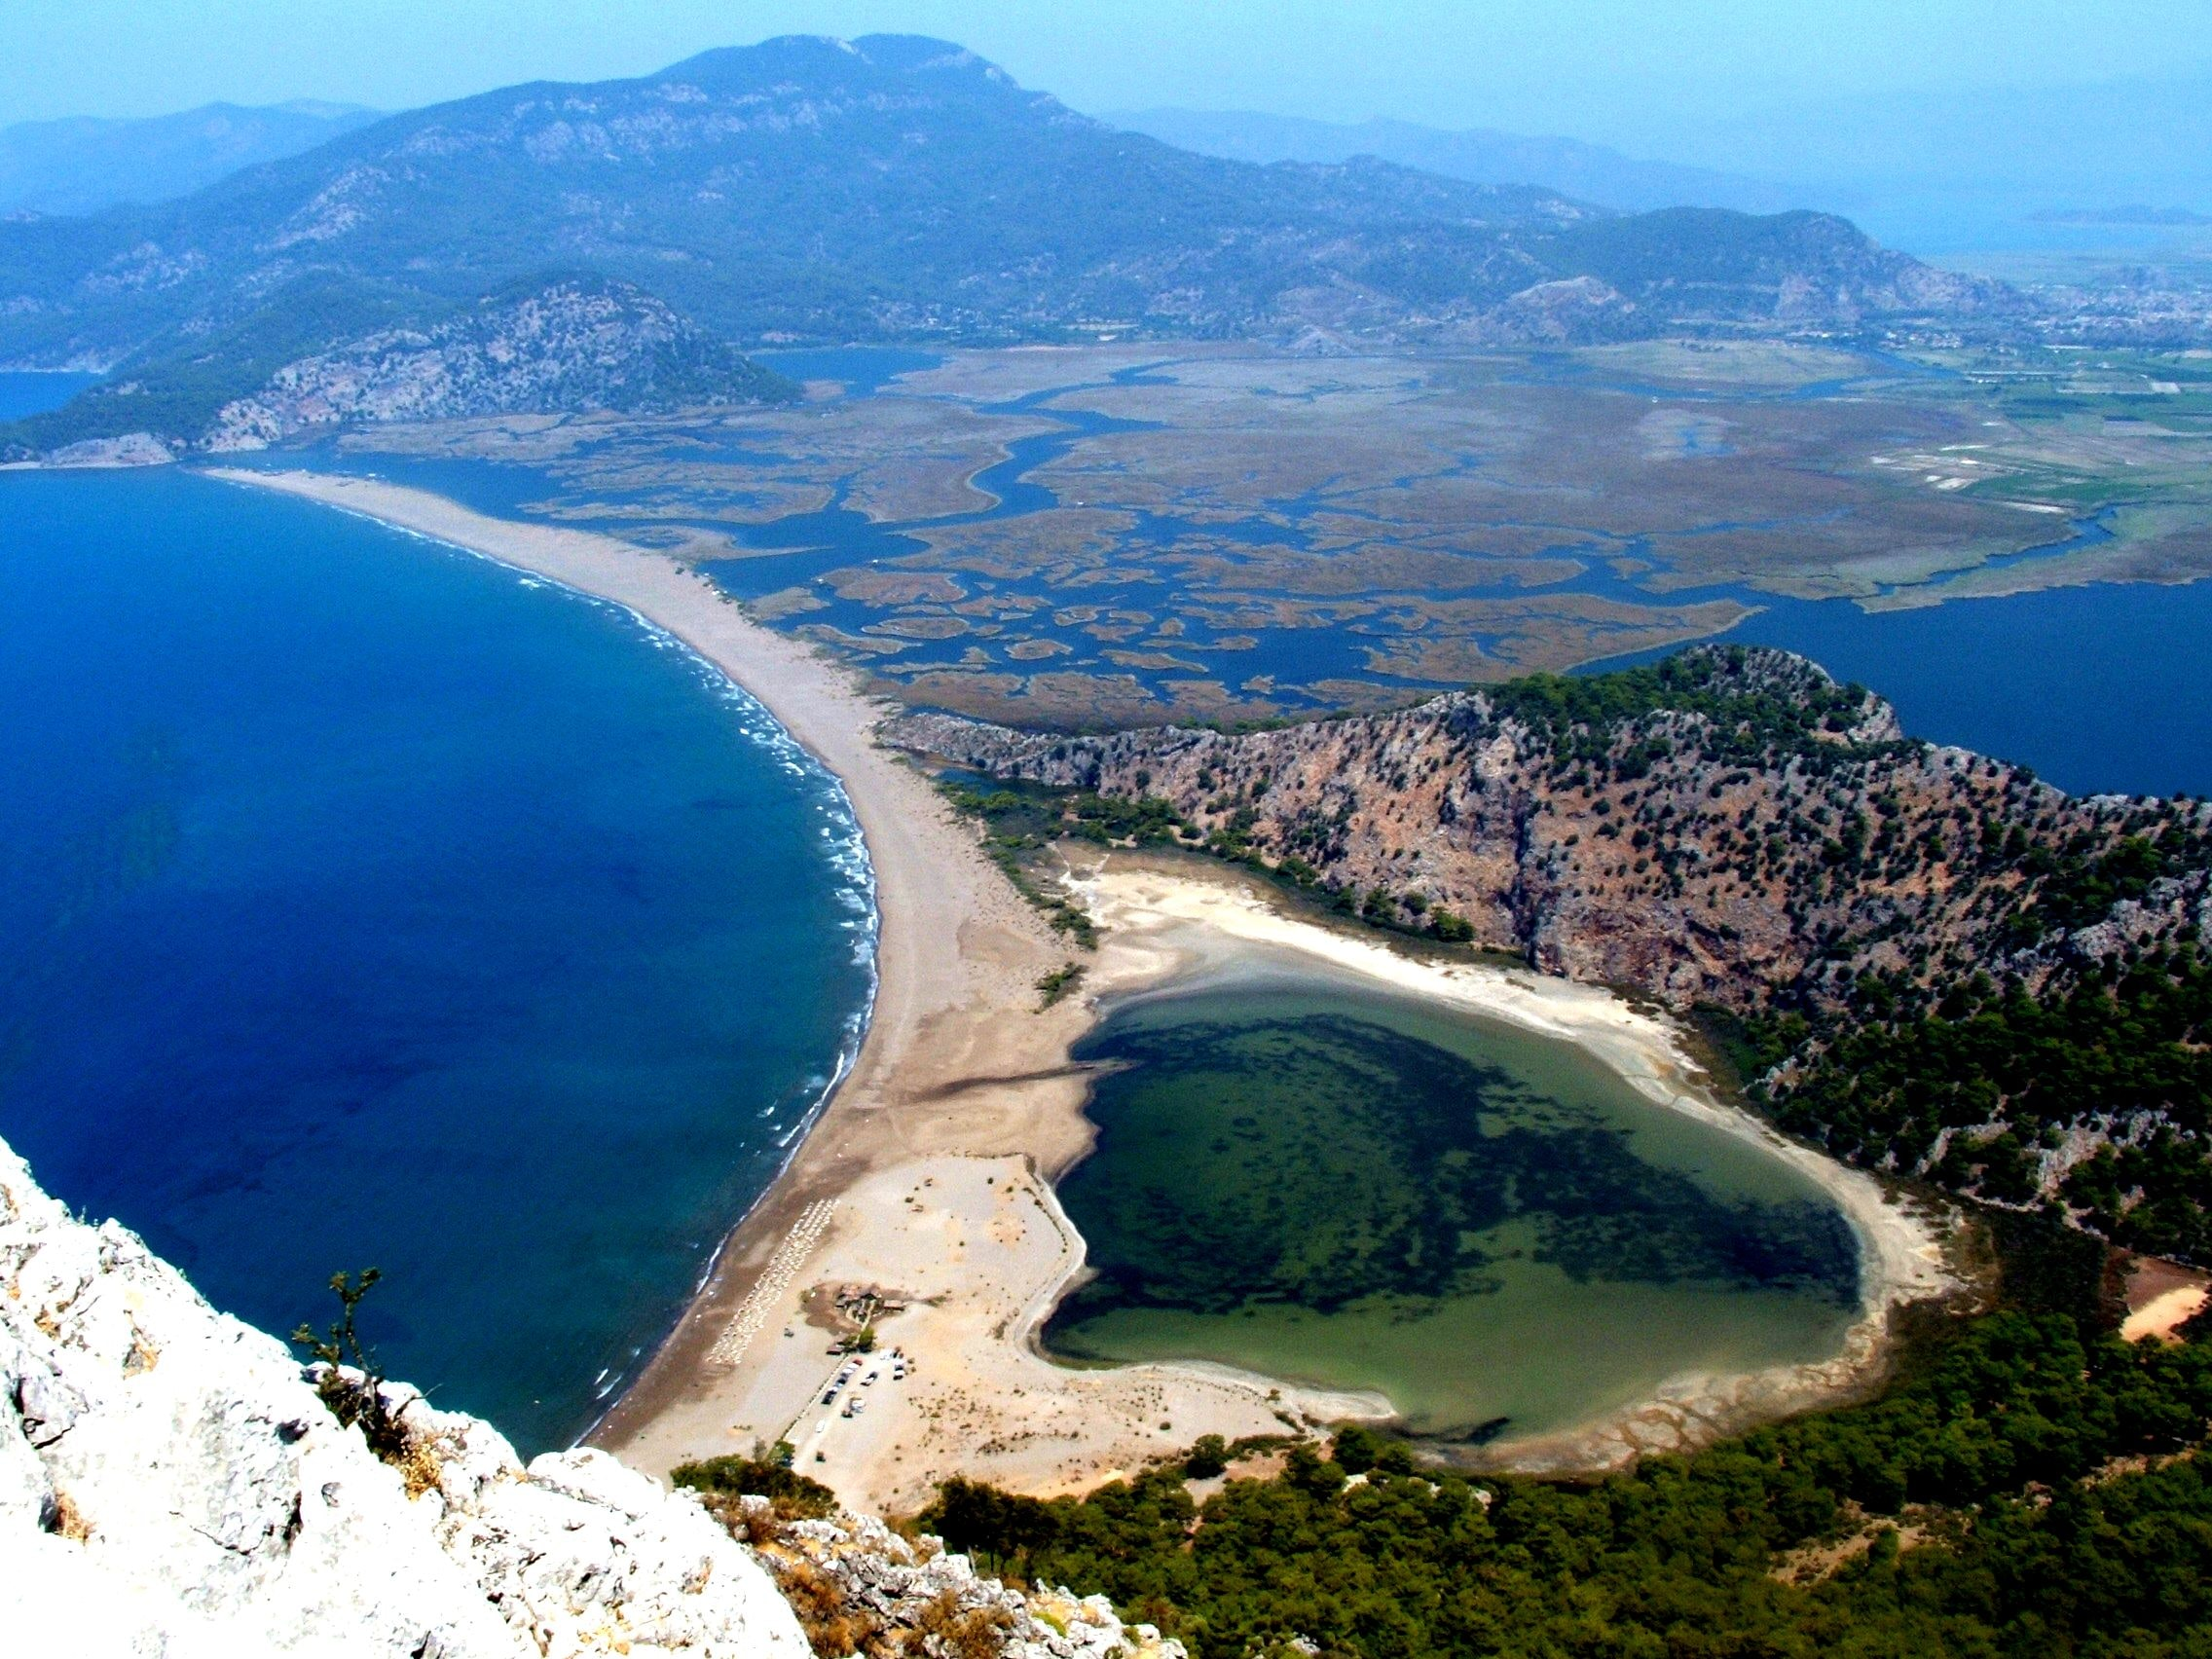 A mountaintop view of a beach and a floodplain in Dalyan Belediyesi